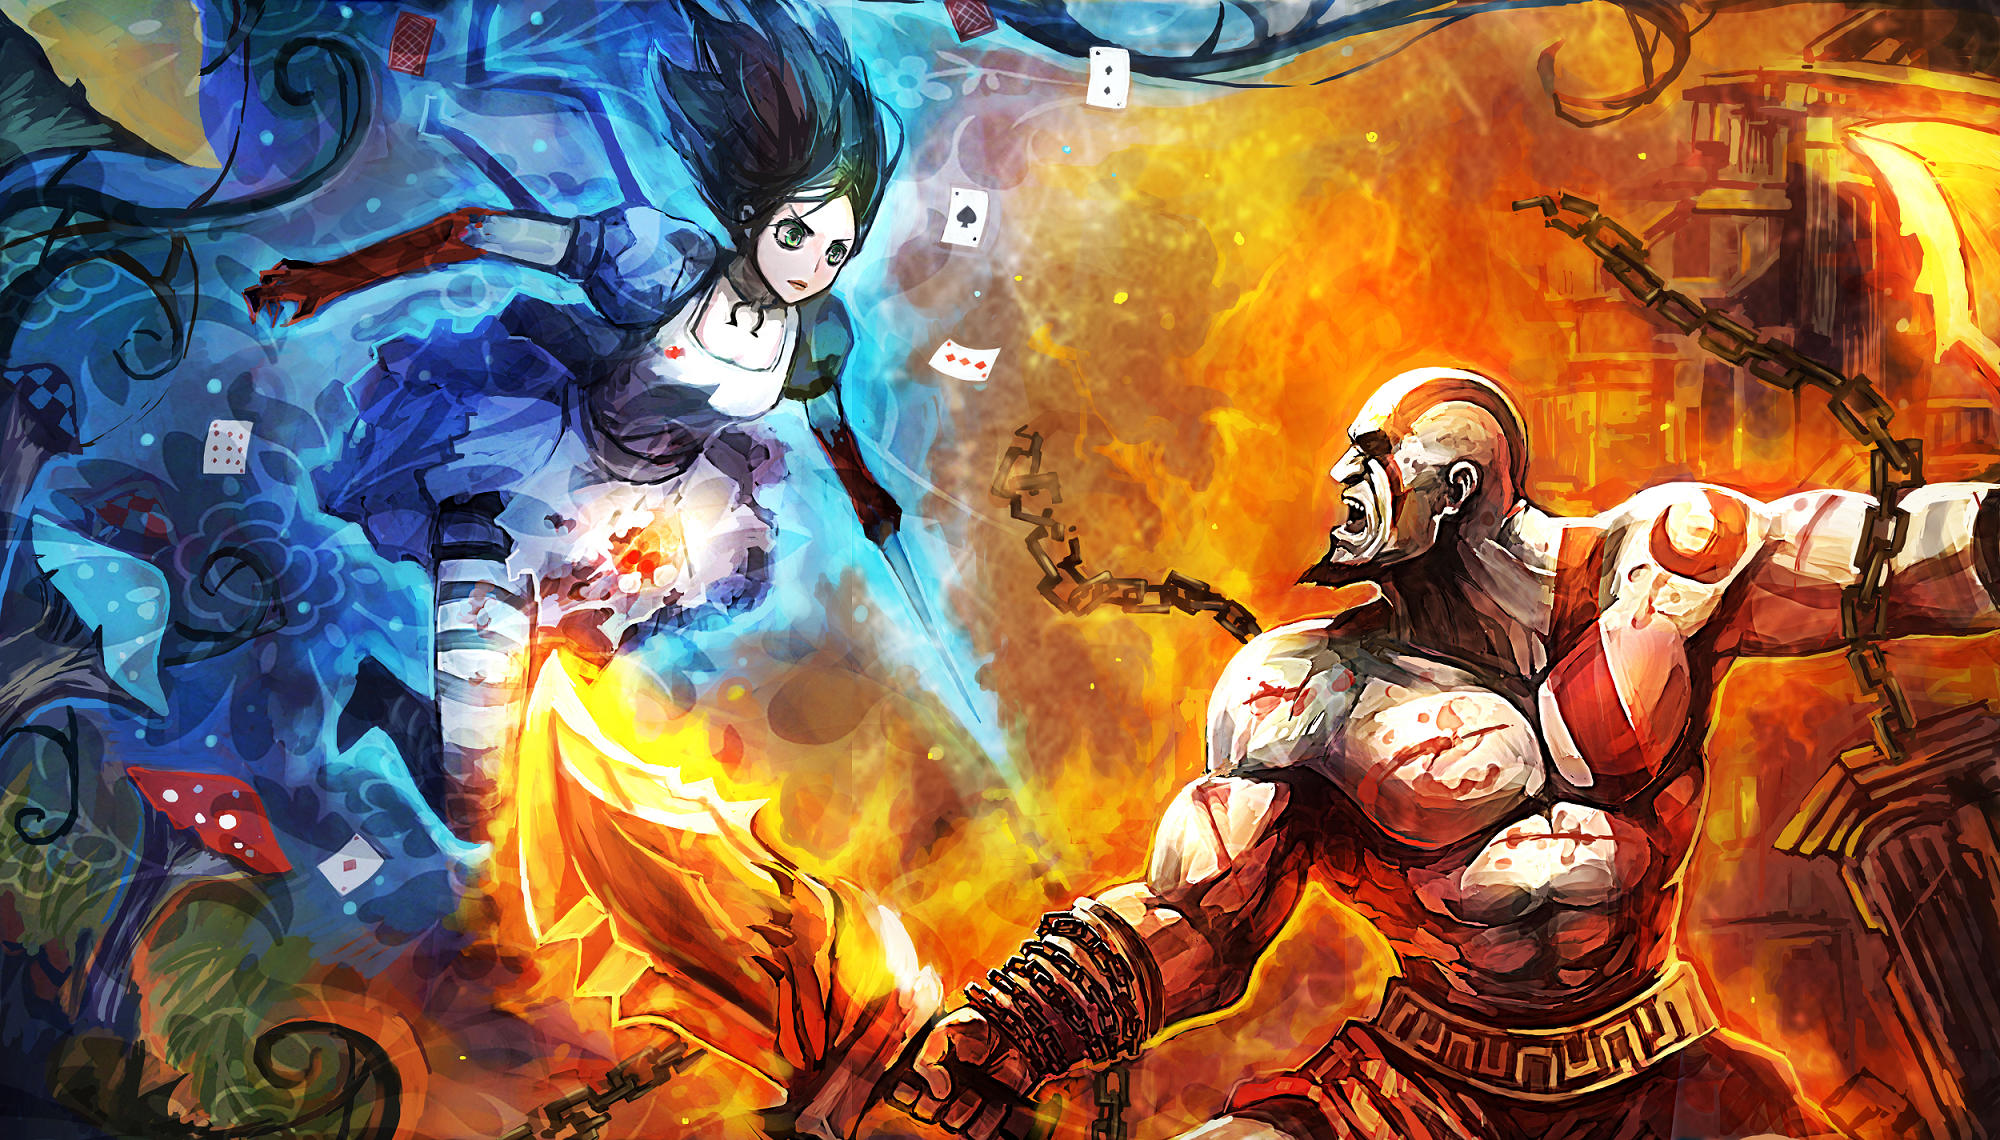 disney hercules vs kratos - photo #13